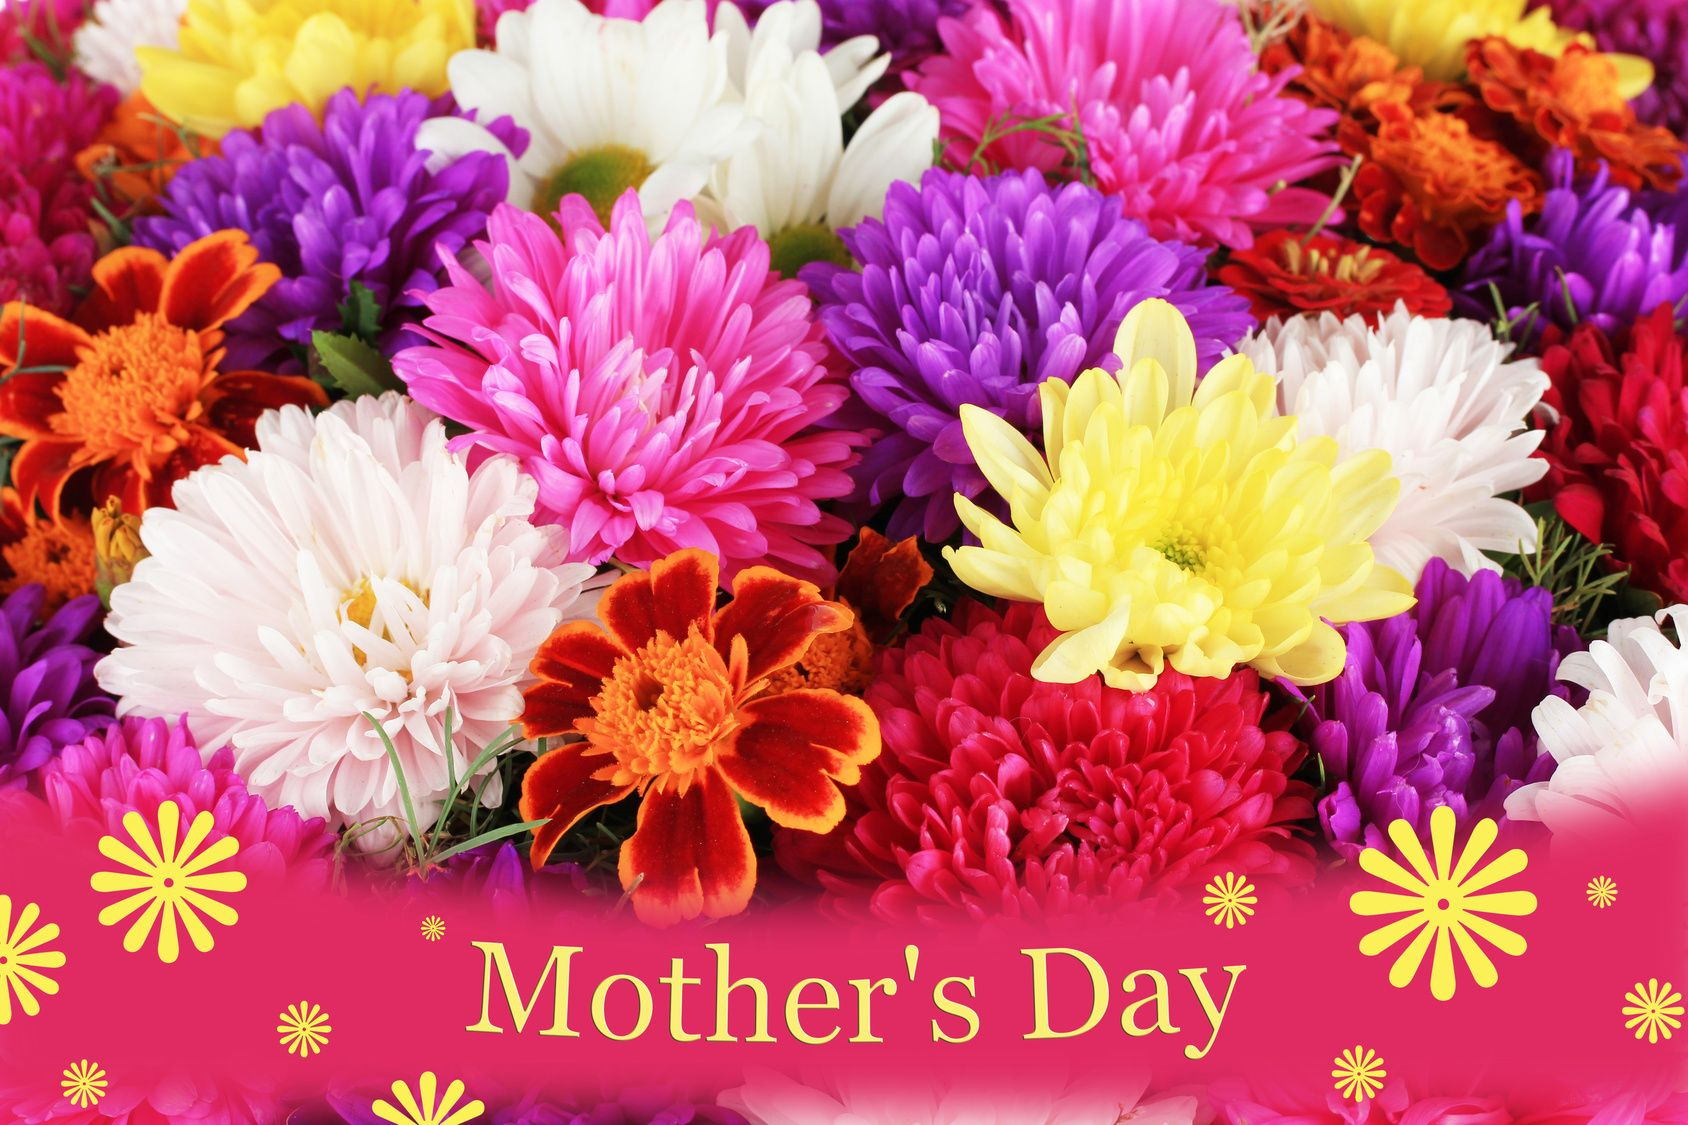 We are providing you happy mothers day flowers bouquets for Mothers day flower arrangements